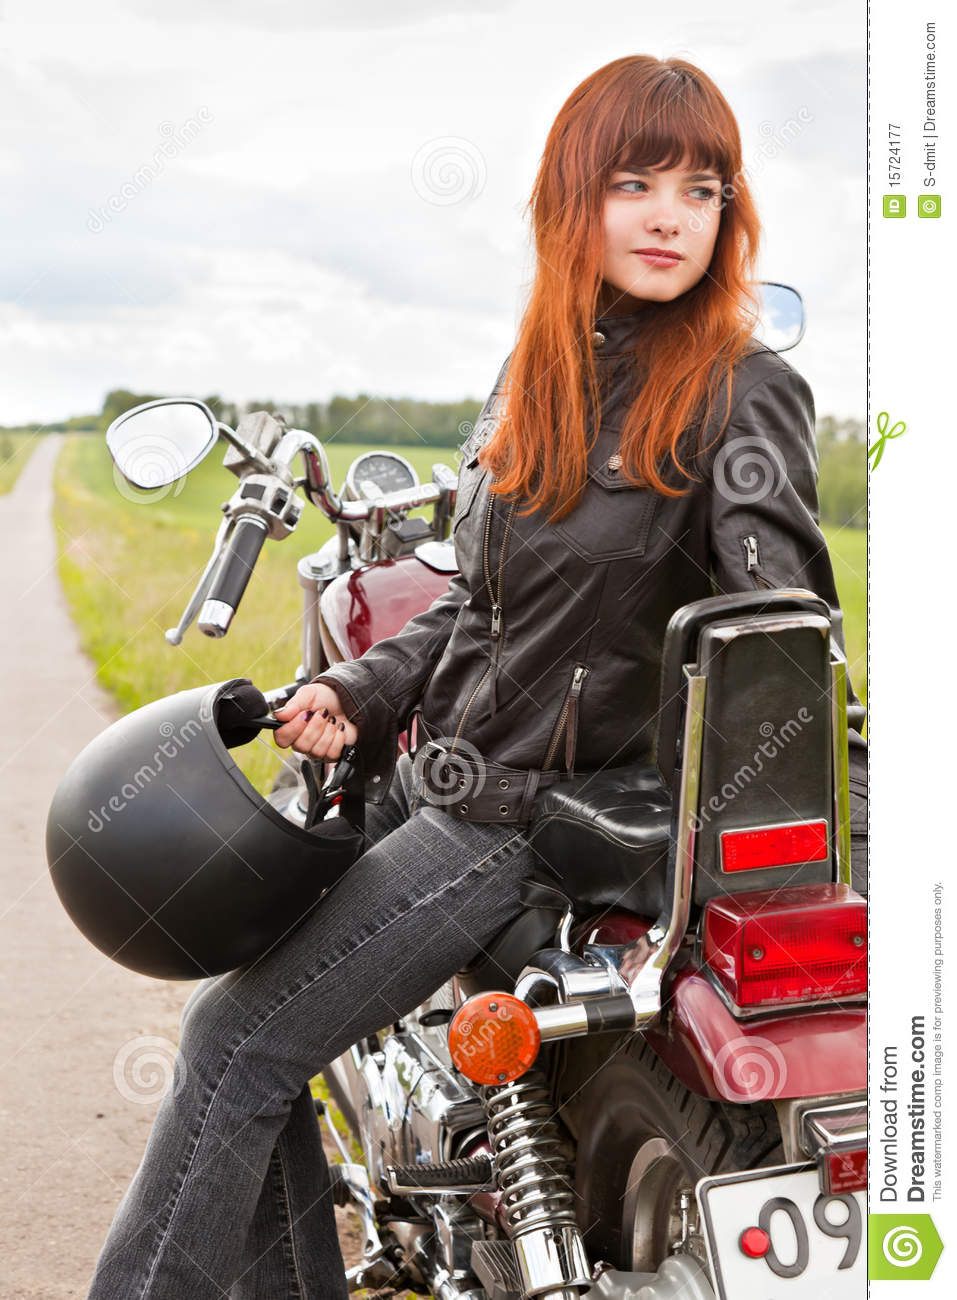 Biker Girl On A Motorcycle Royalty Free Stock Photography - Image ...